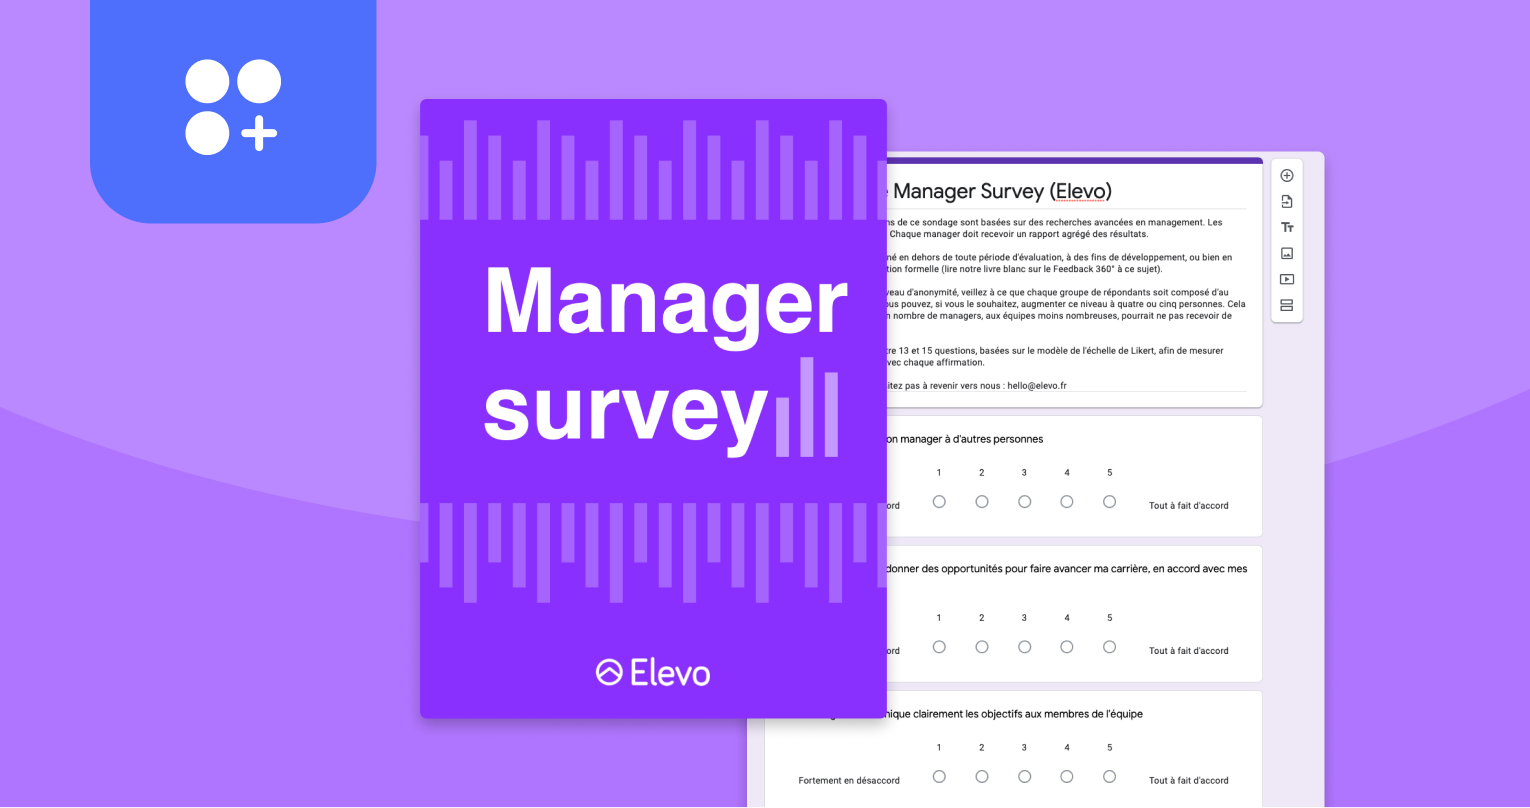 Elevo - The Survey Manager's Guide